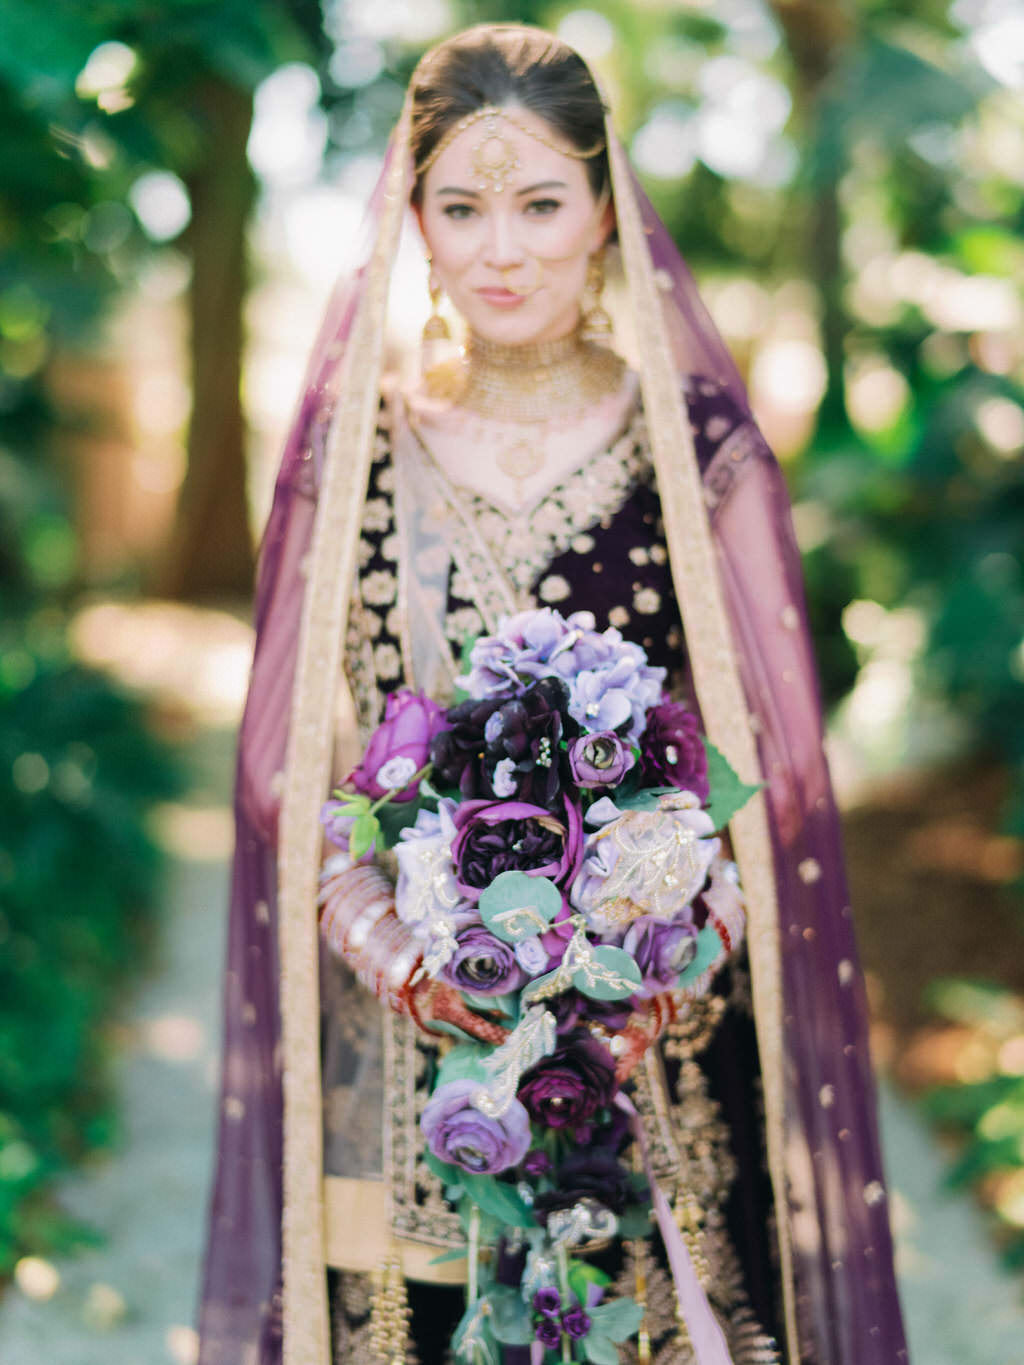 Tampa Traditional Hindu, Indian Colorful Bride, Beauty Wedding Portrait, Extravagant Gold Bridal Jewelry, Custom Purple Velvet and Gold Lehenga and Purple and Gold Bridal Indian Veil Holding Dark Purple, Plum, Lilac and Green Leaf with Gold Accent Floral Bouquet